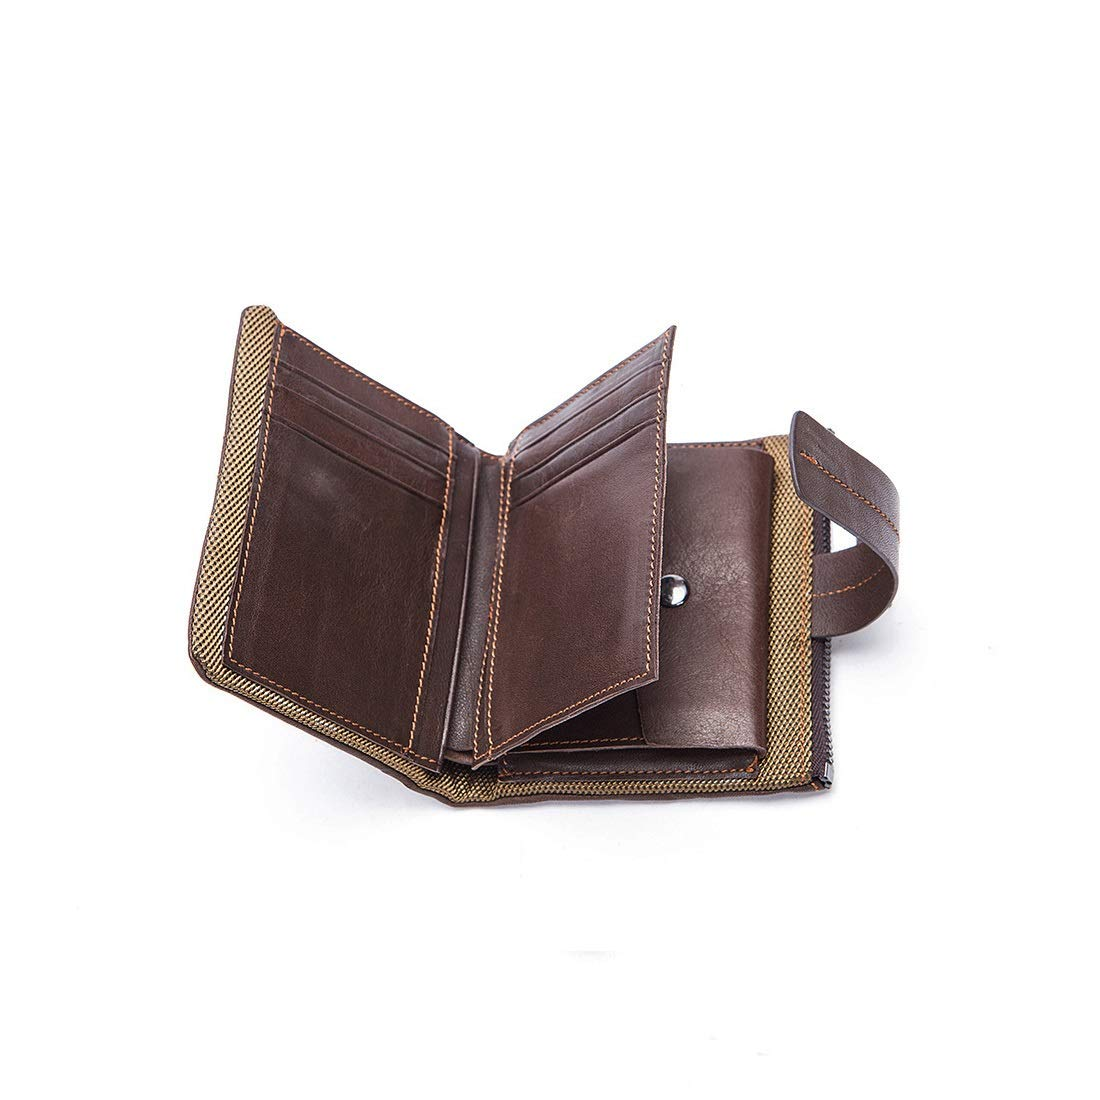 CEFULTY Short Wallet Coin Purse Mini Wallet Mens Double Fold Wallet Zipper Wallet Popular Leather Mens Business Card Holder Color : Black